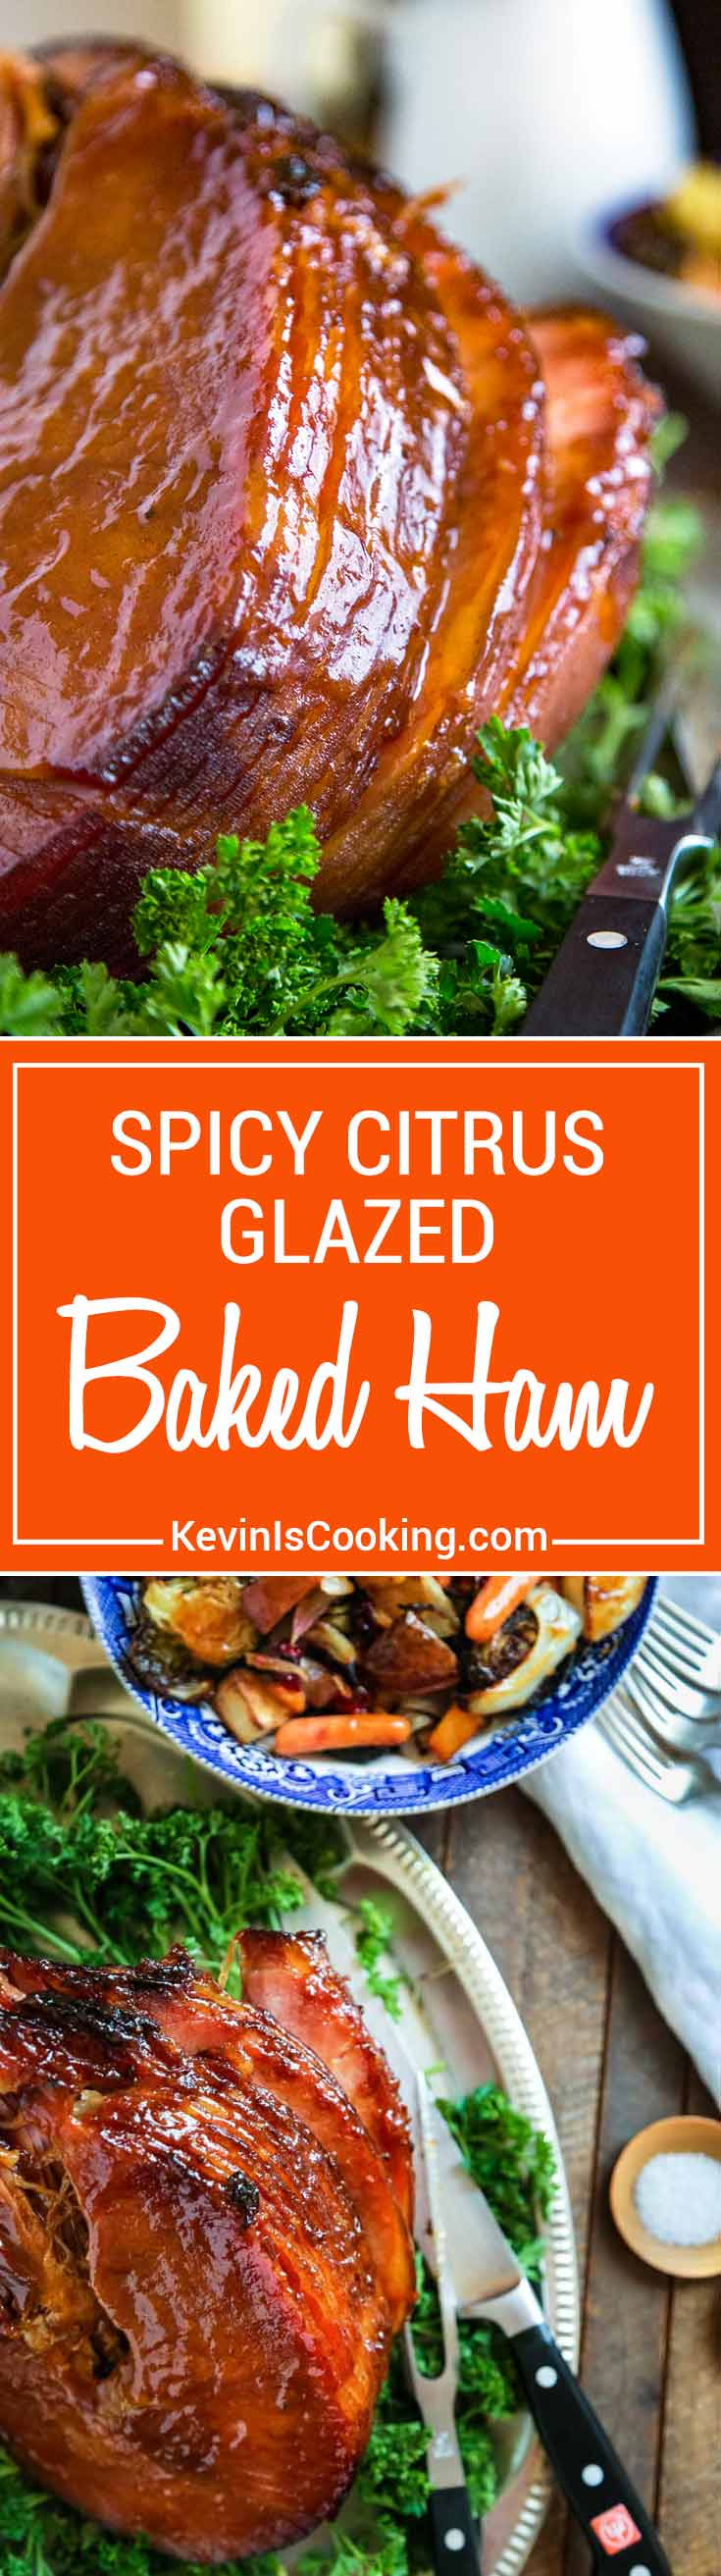 Just mouthwatering! Perfect for a holiday table, this Spicy Citrus Baked Ham Glaze develops a wonderful, caramelized crust that's just mouthwatering using orange juice, cinnamon, clove and chipotle powder.